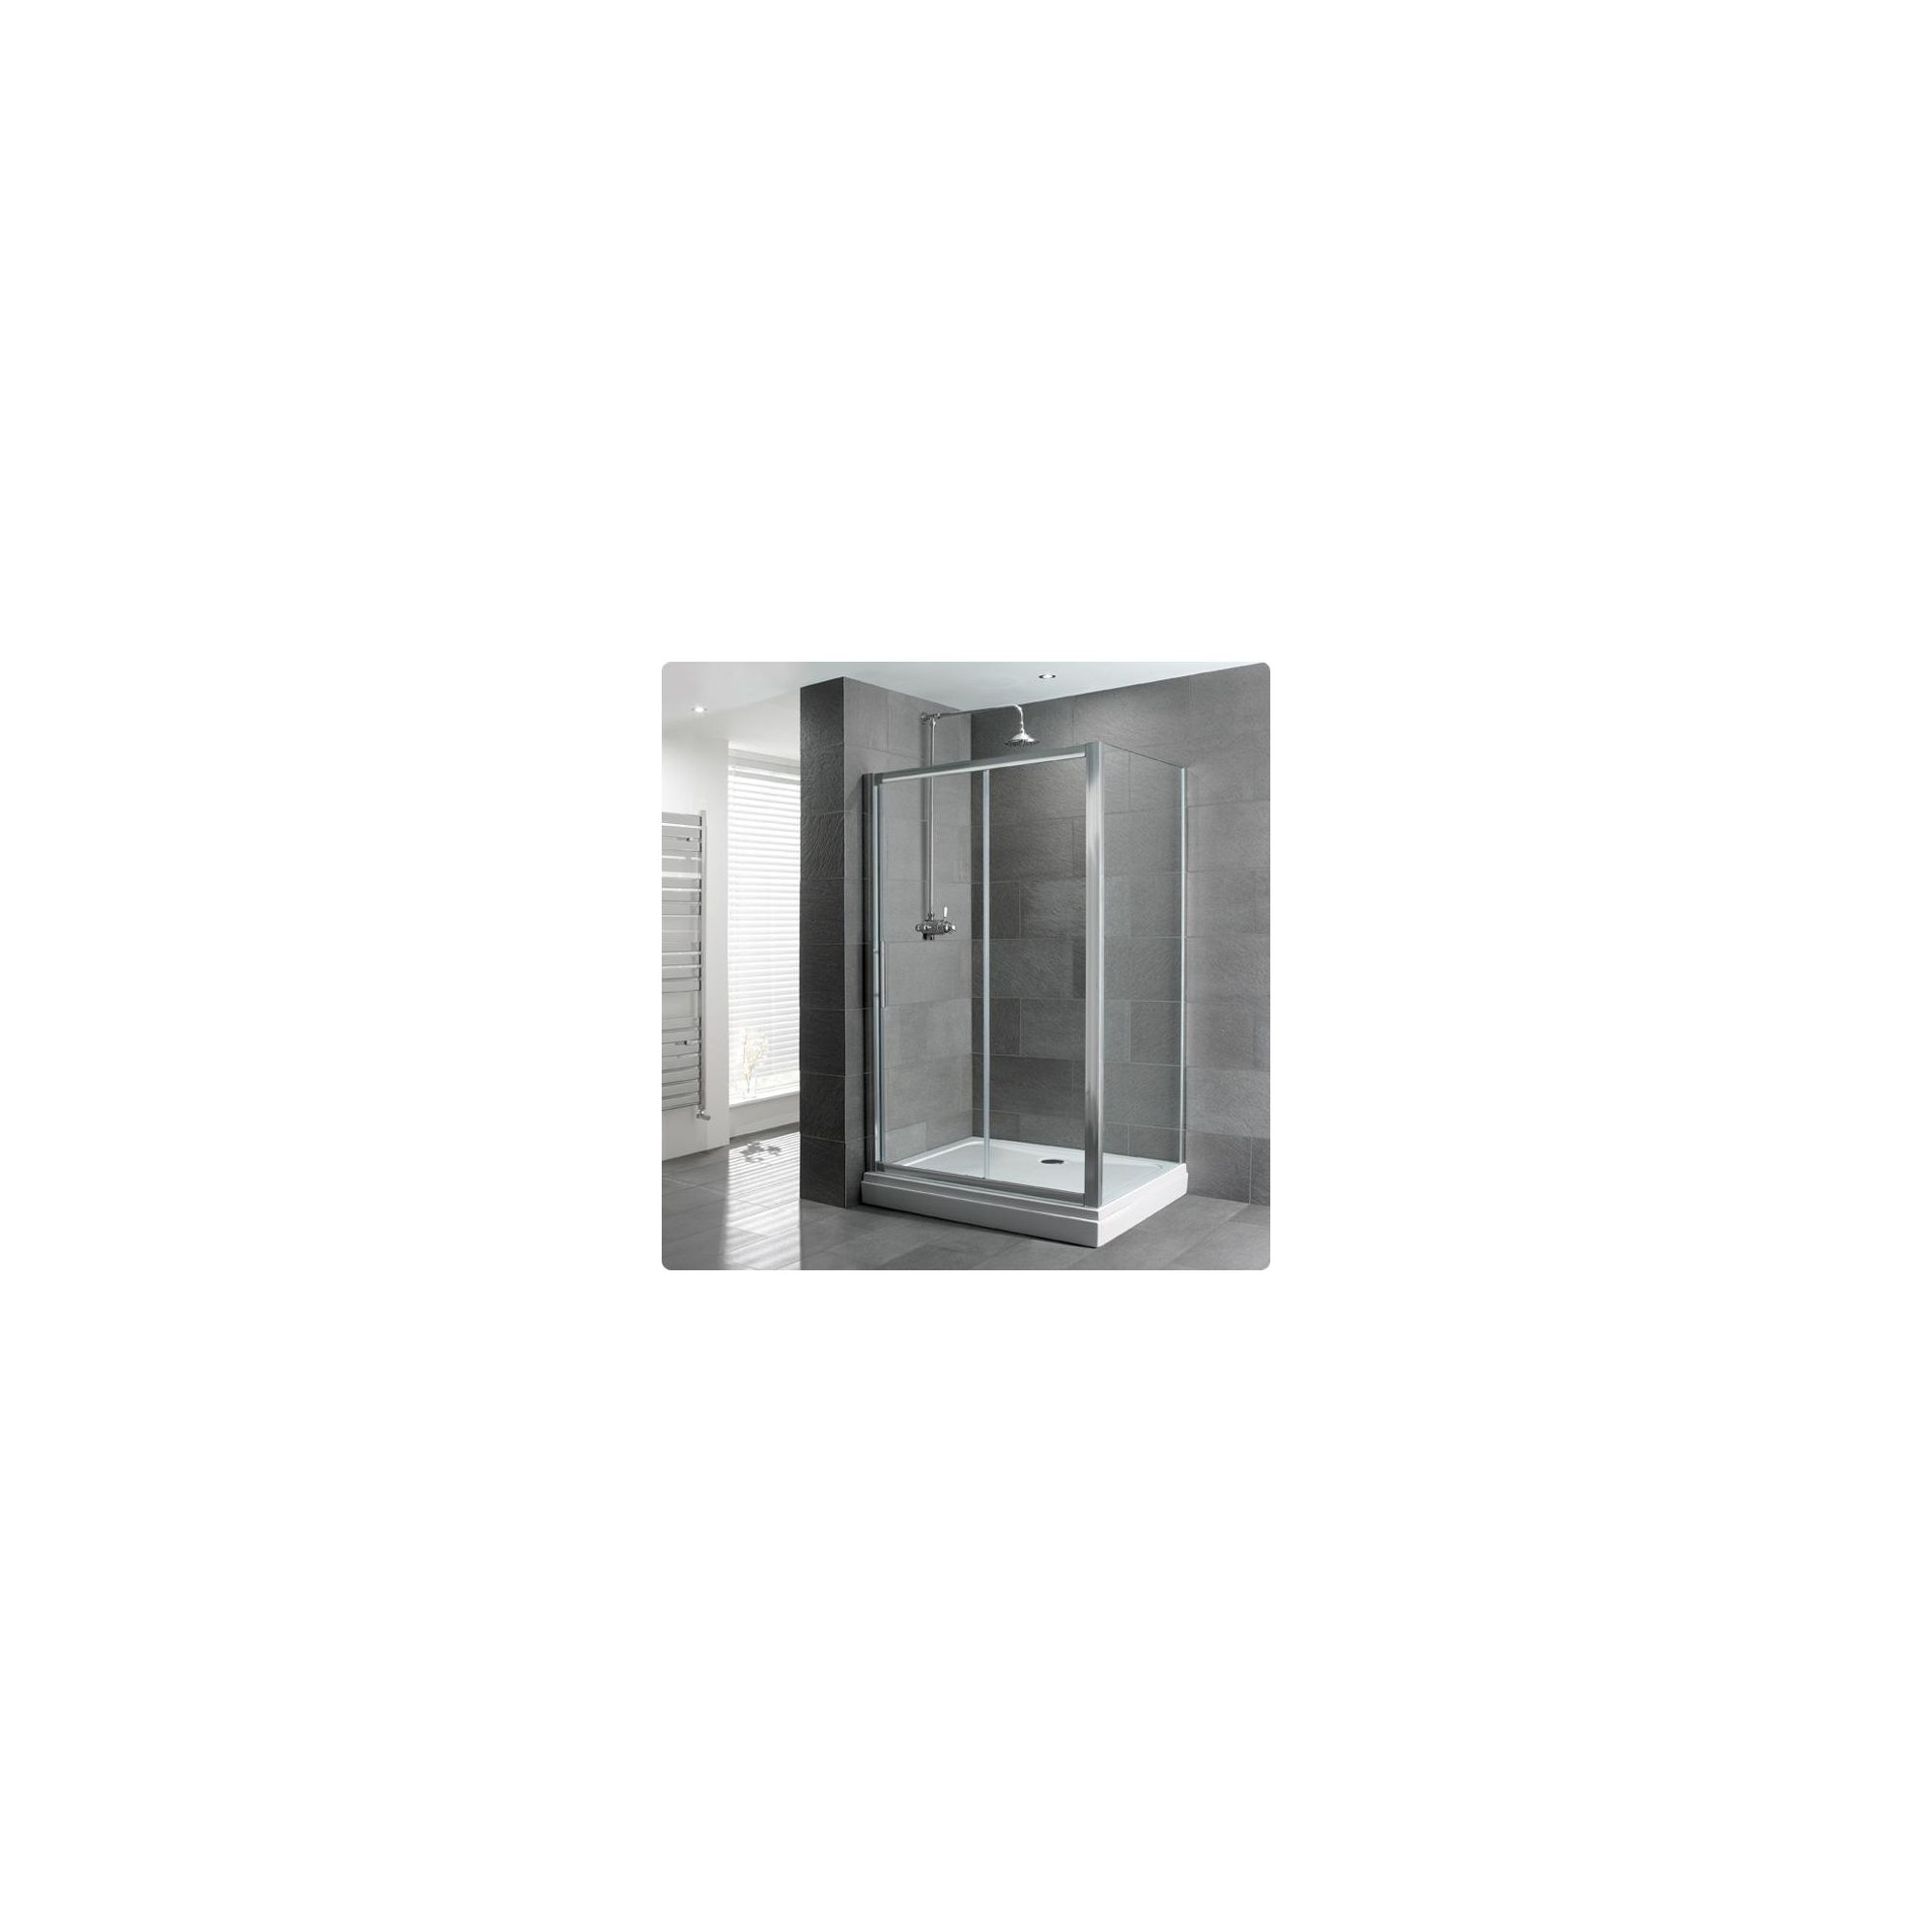 Duchy Select Silver Single Sliding Door Shower Enclosure, 1200mm x 760mm, Standard Tray, 6mm Glass at Tesco Direct